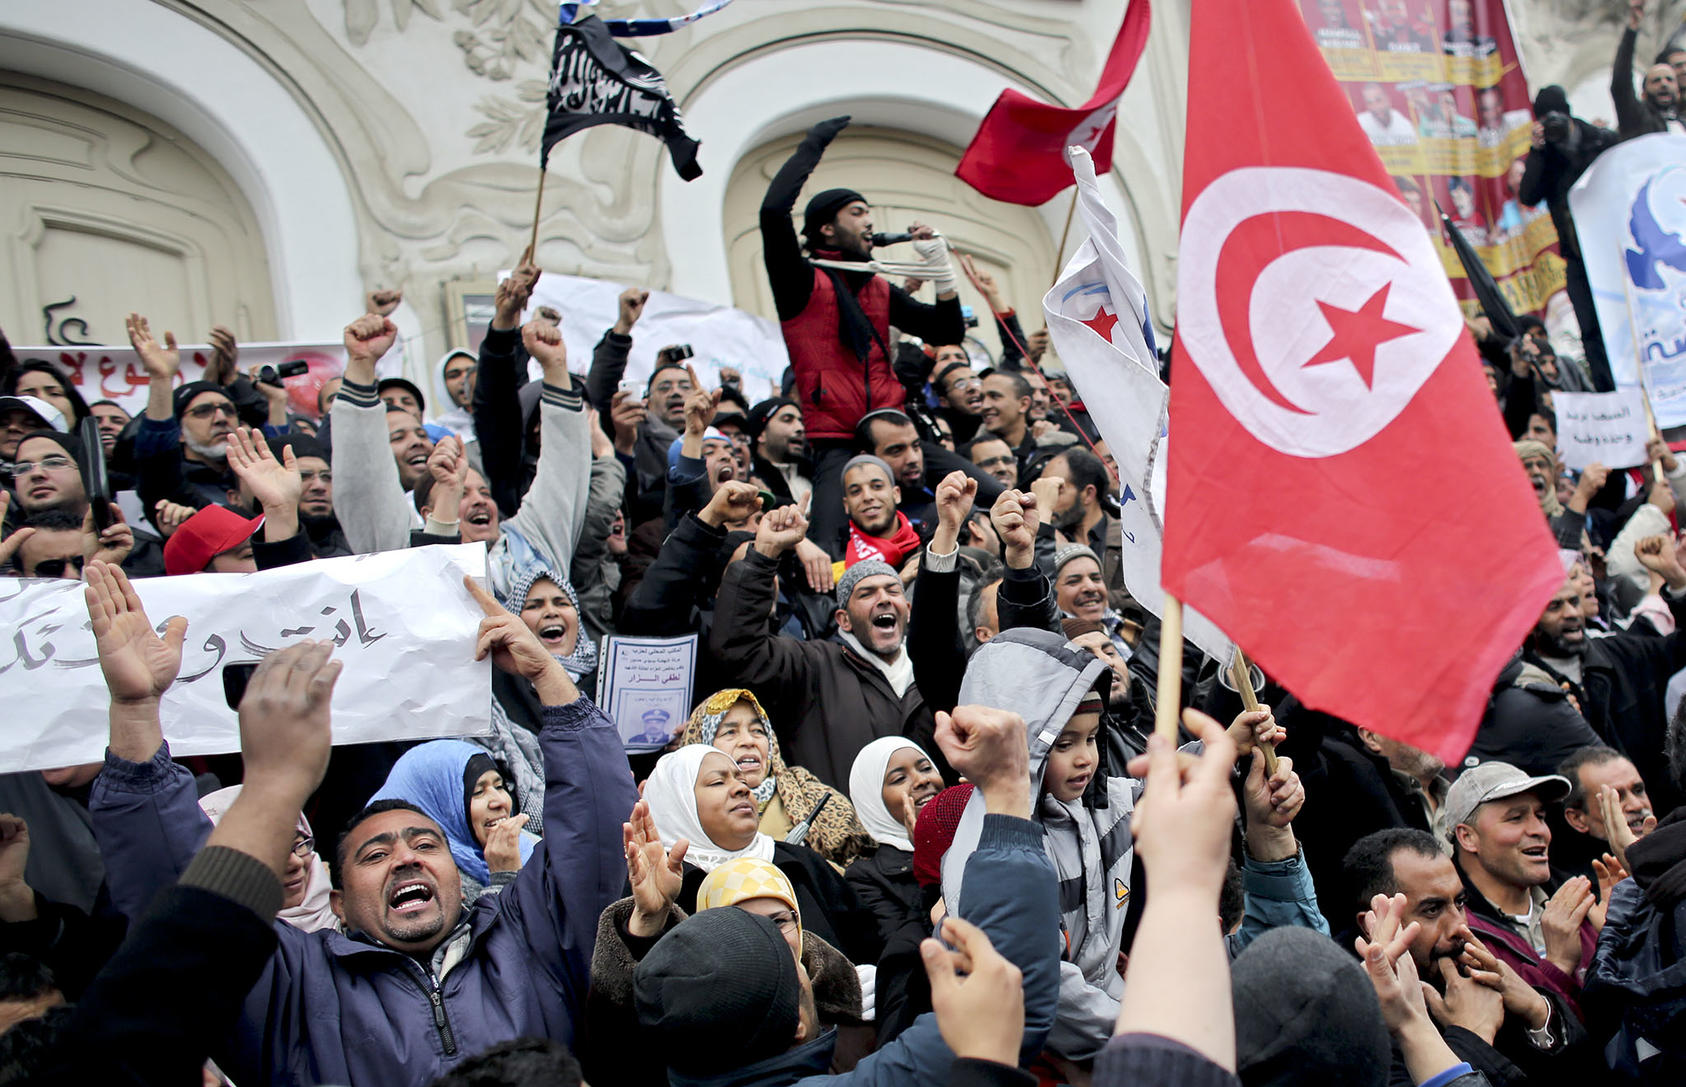 People demonstrate in support of Ennahda, Tunisia's largest Islamist party, which led a governing coalition, in Tunis, Tunisia, Feb. 9, 2013. (Tara Todras-Whitehill/The New York Times)